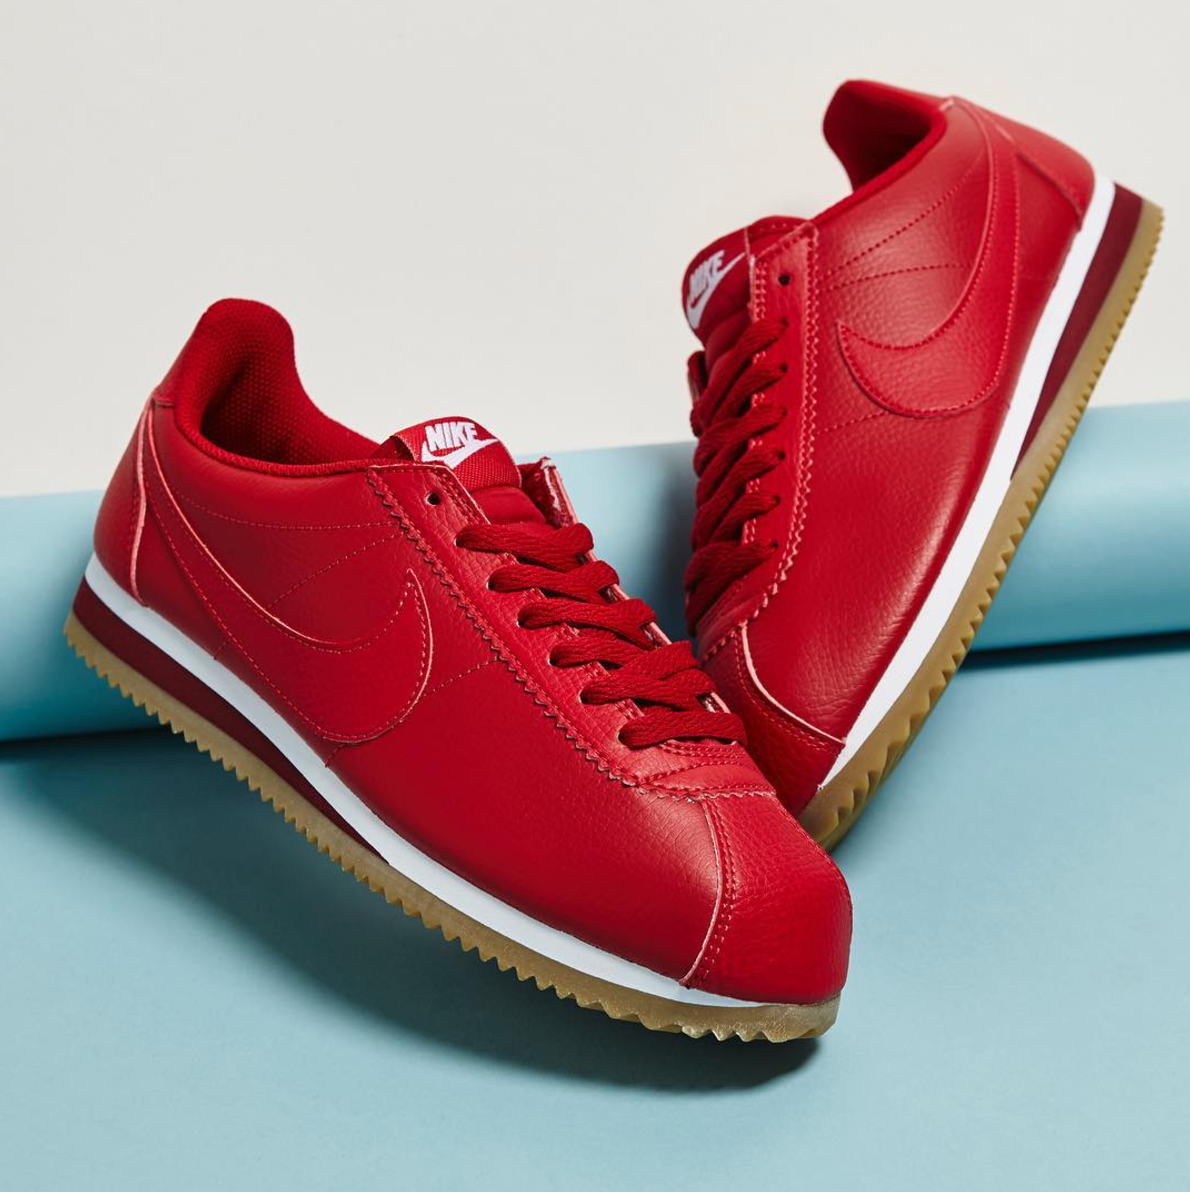 Nike Classic Cortez Leather (Comet Red) | Nike classic